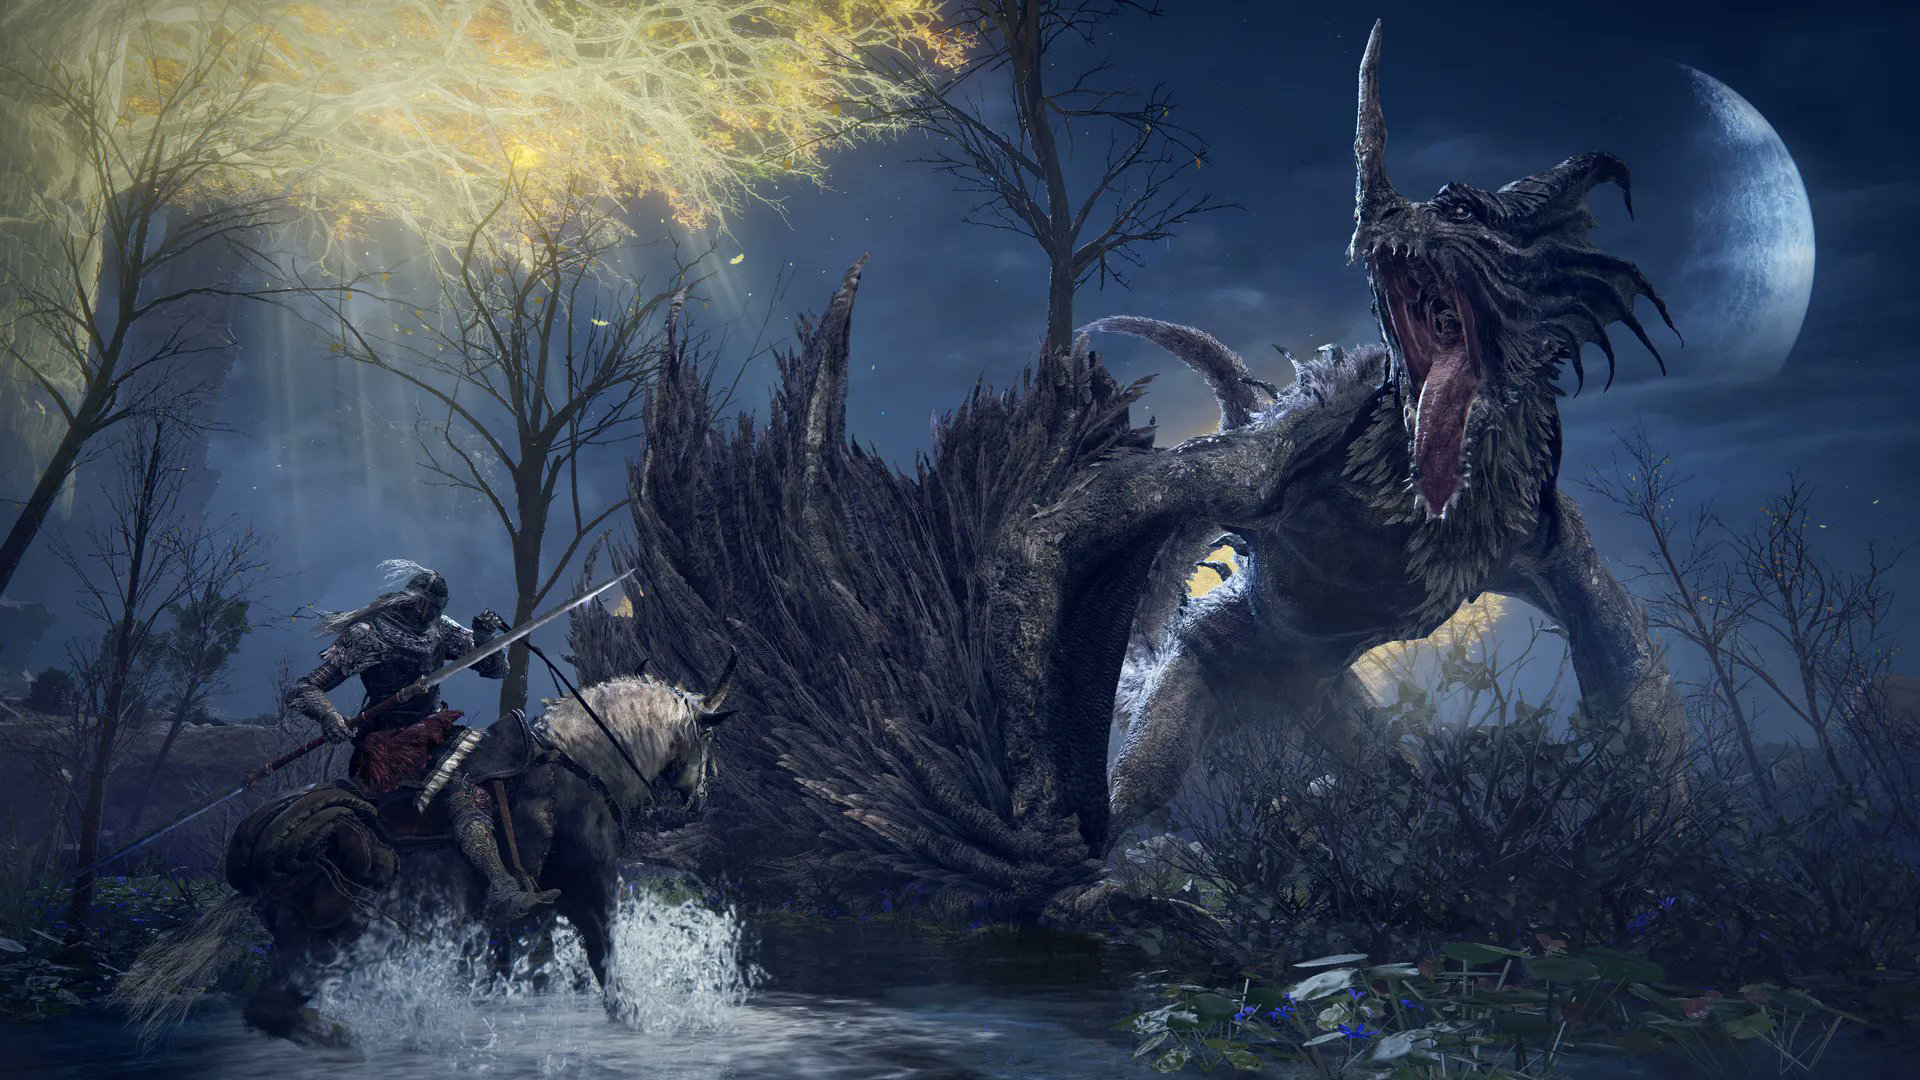 Elden Ring - A giant dragon roars over a horseman in a river